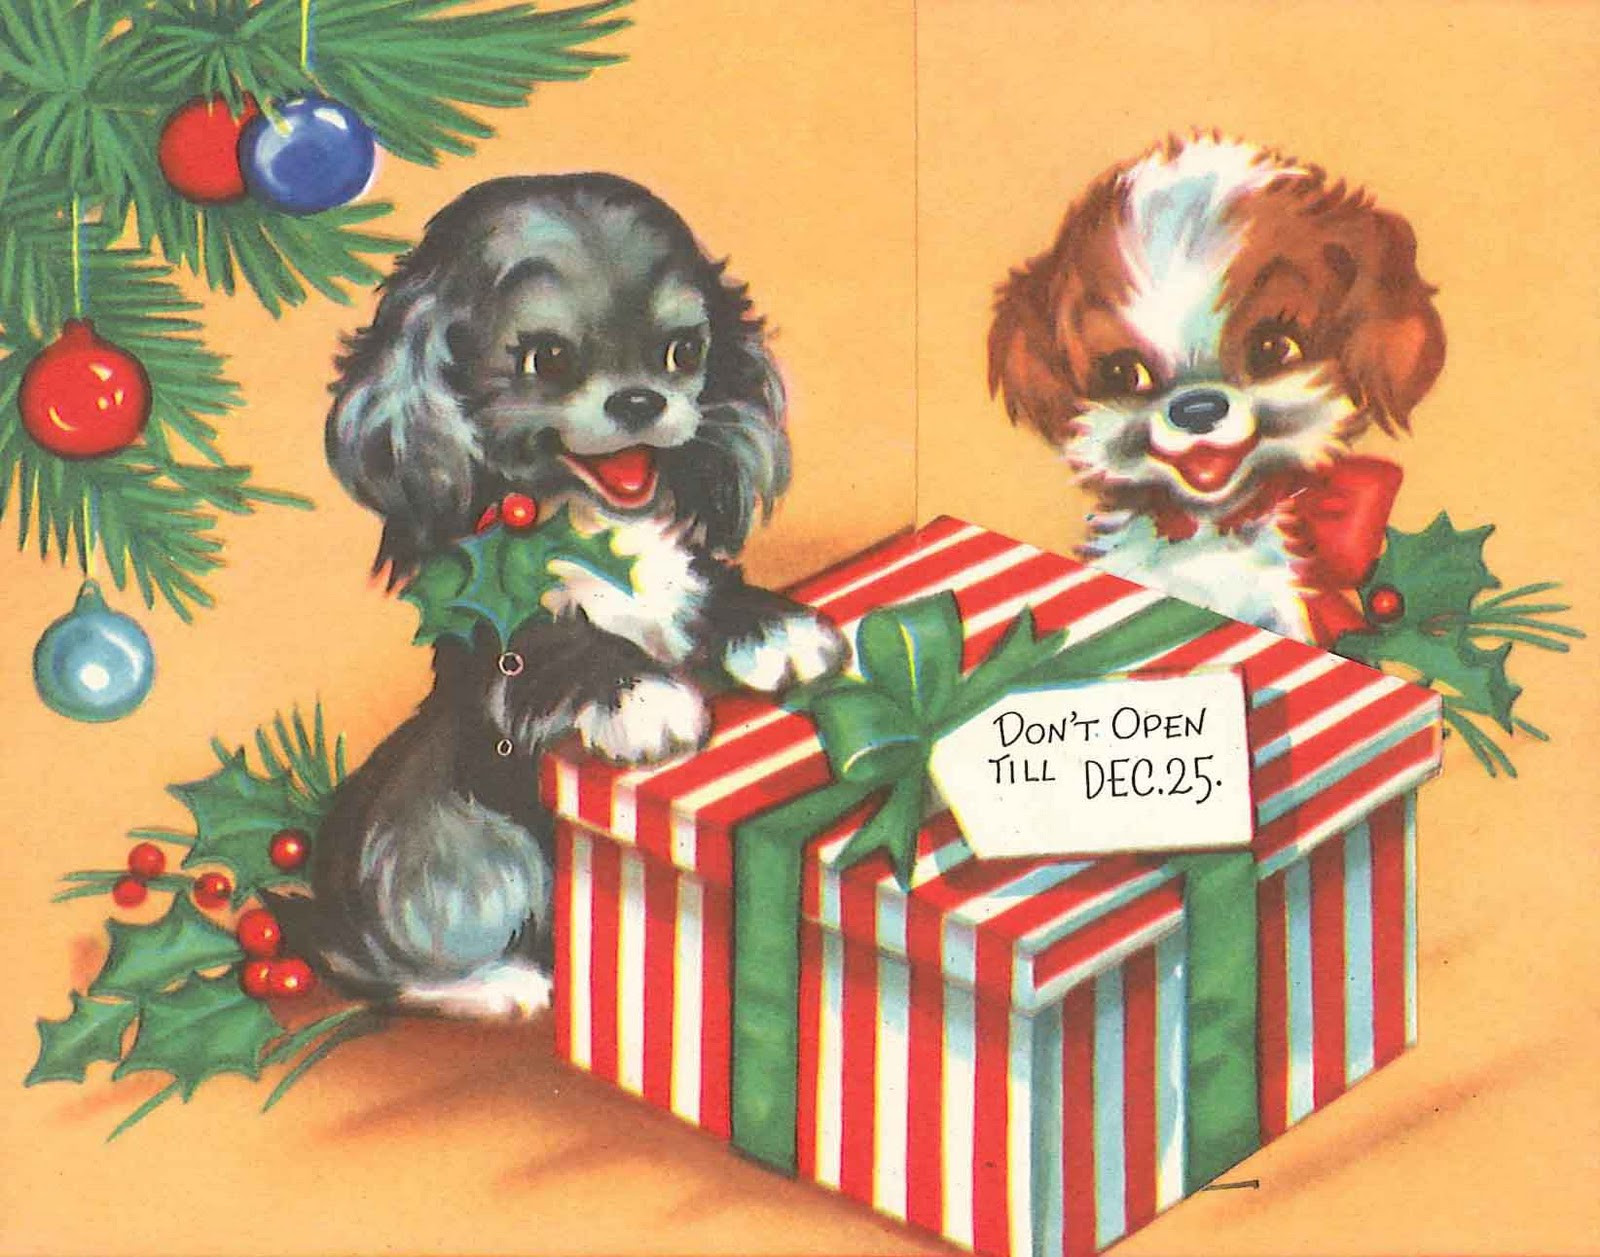 Very Merry Vintage Syle Very Merry Vintage Christmas Card Images